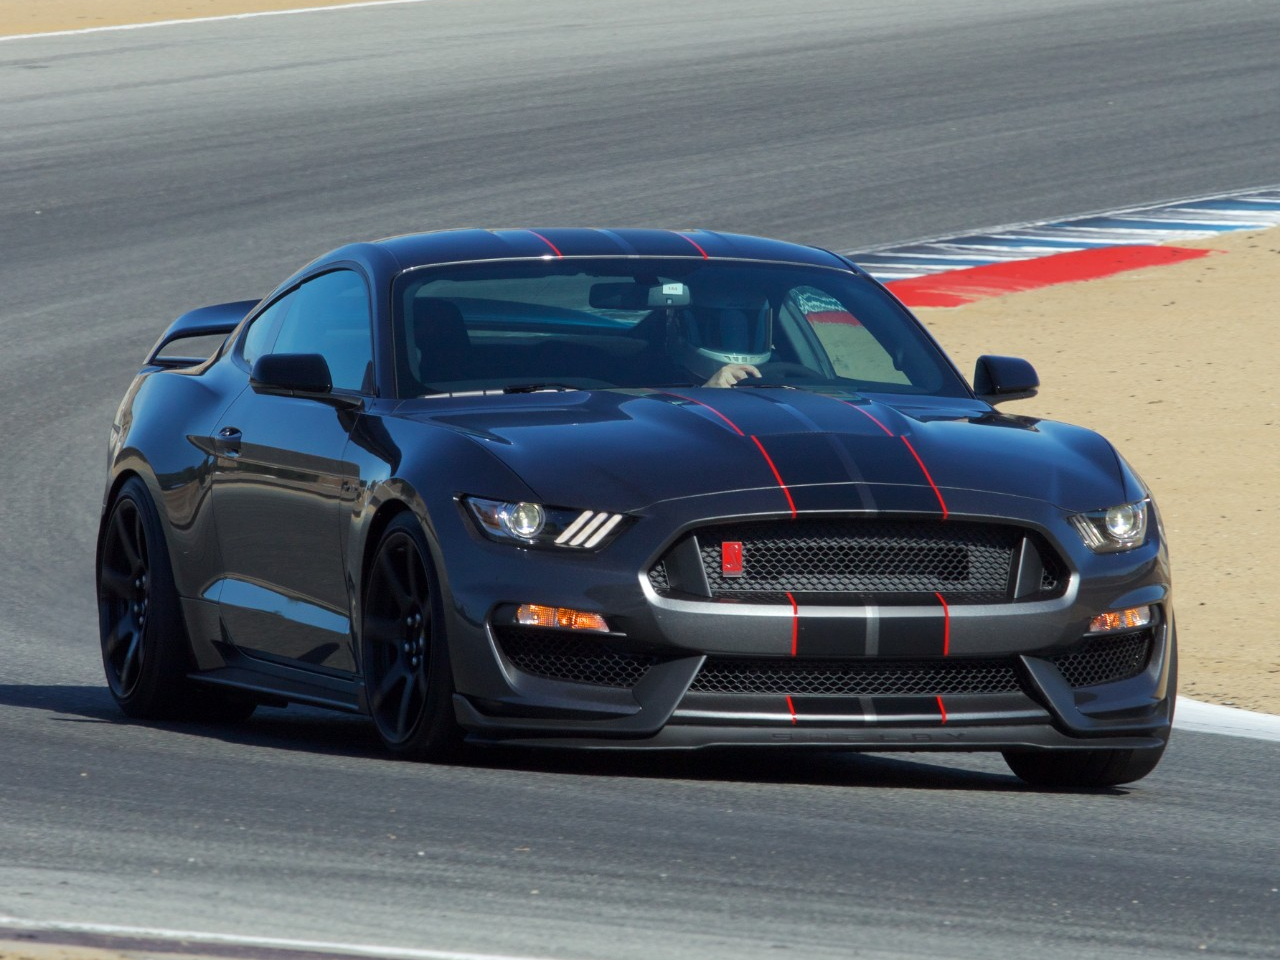 GT350 Colors - Page 33 - 2015+ S550 Mustang Forum (GT GT350 GT500 I4 V6) - Mustang6G.com | Automotive | Pinterest | Ford employee Ford and Cars & GT350 Colors - Page 33 - 2015+ S550 Mustang Forum (GT GT350 ... markmcfarlin.com